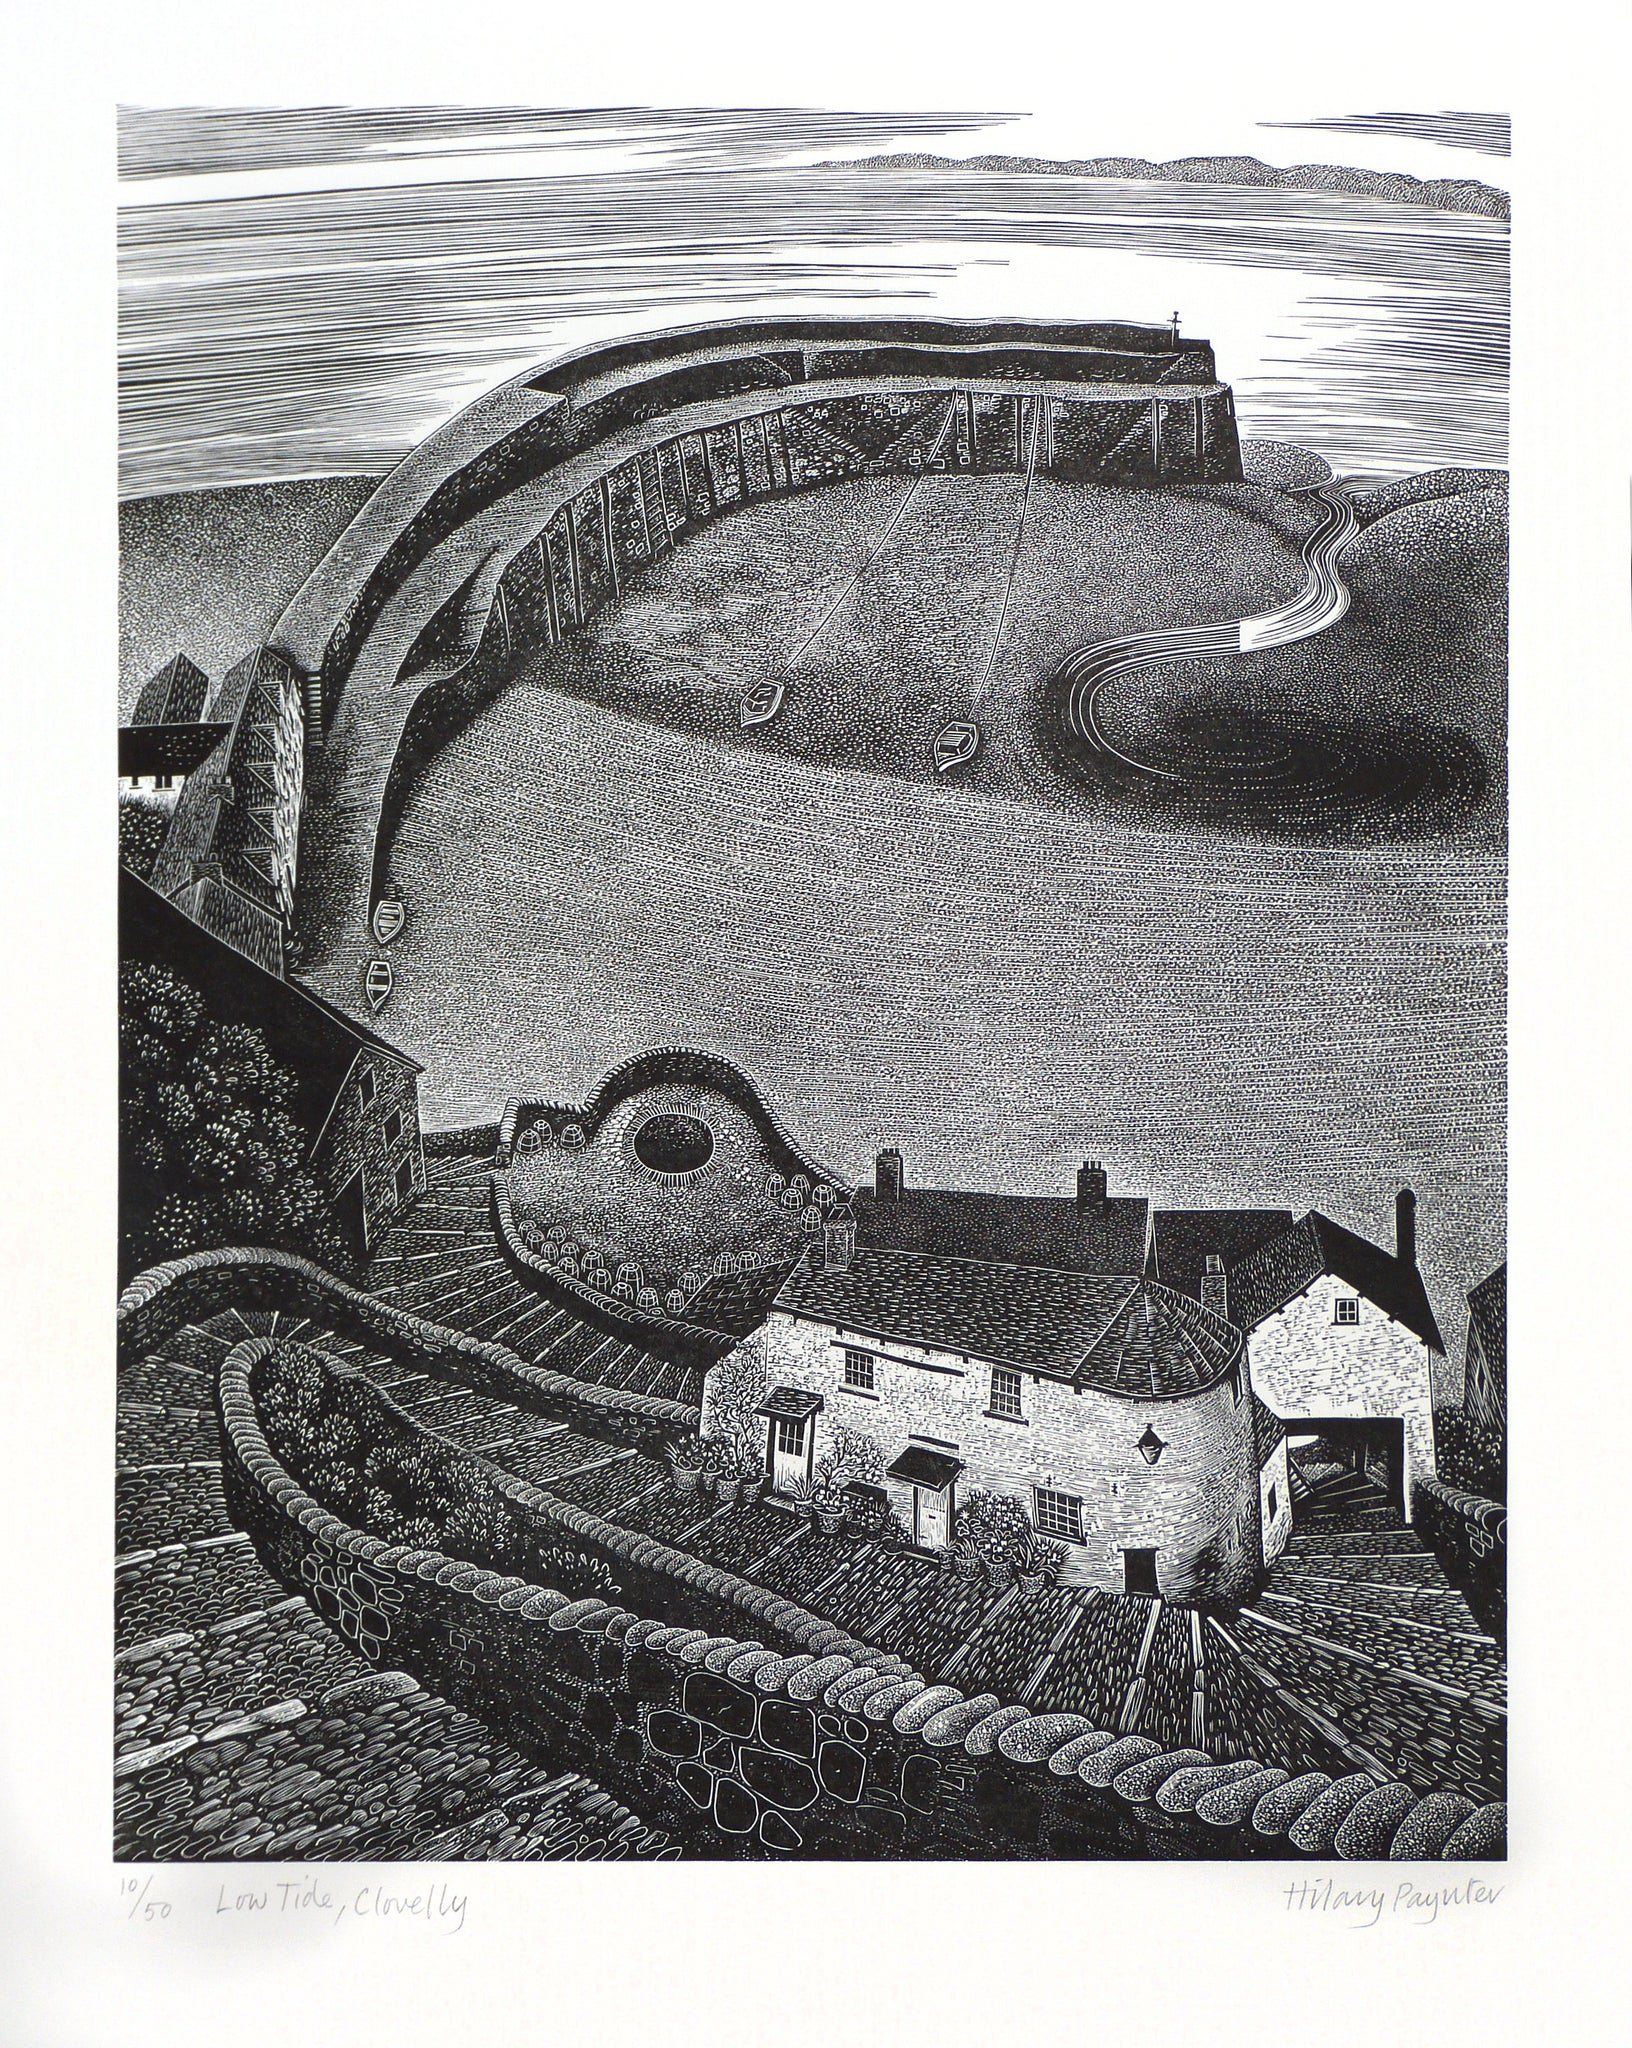 Hilary Paynter Wood Engraving: Low Tide, Clovelly